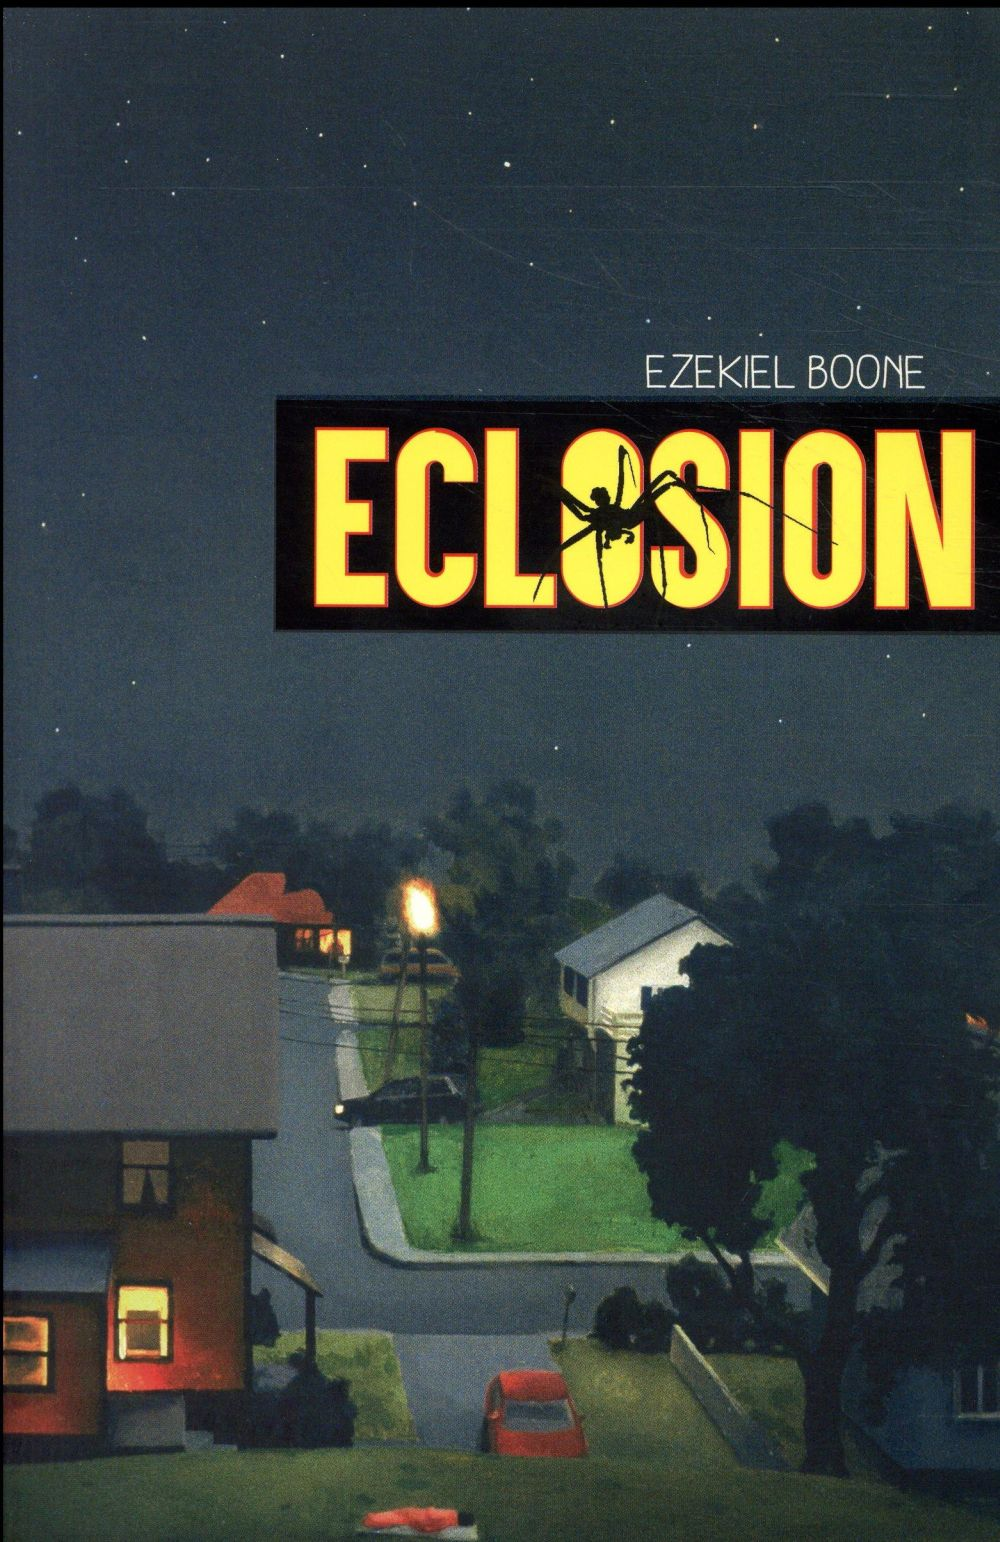 ECLOSION